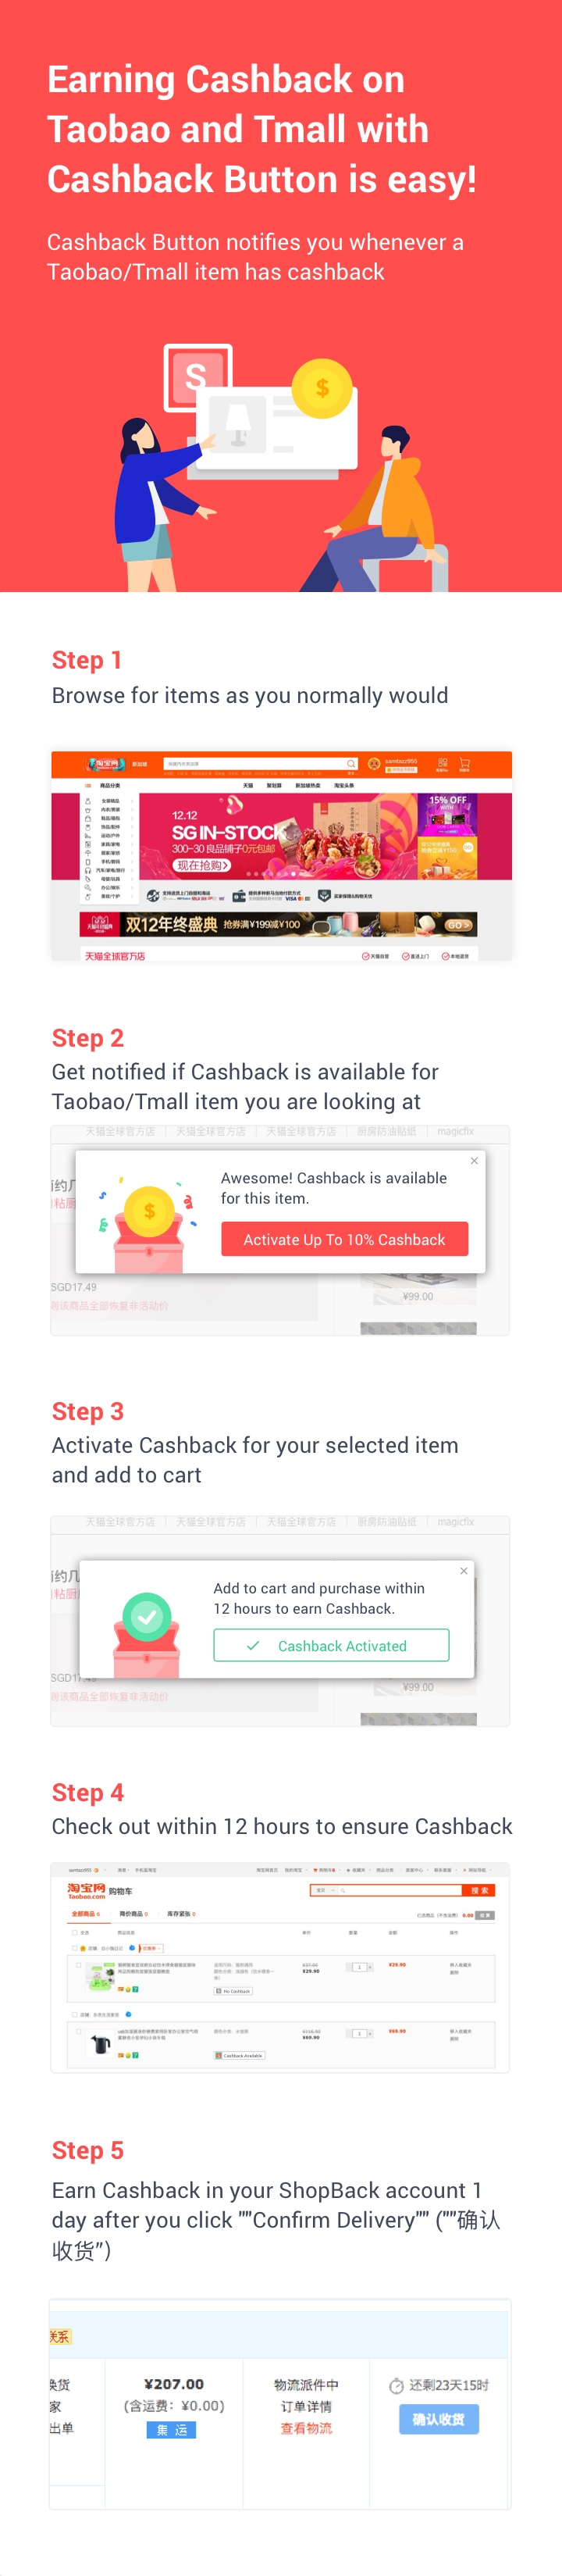 Earn Cashback on Taobao via ShopBack Button